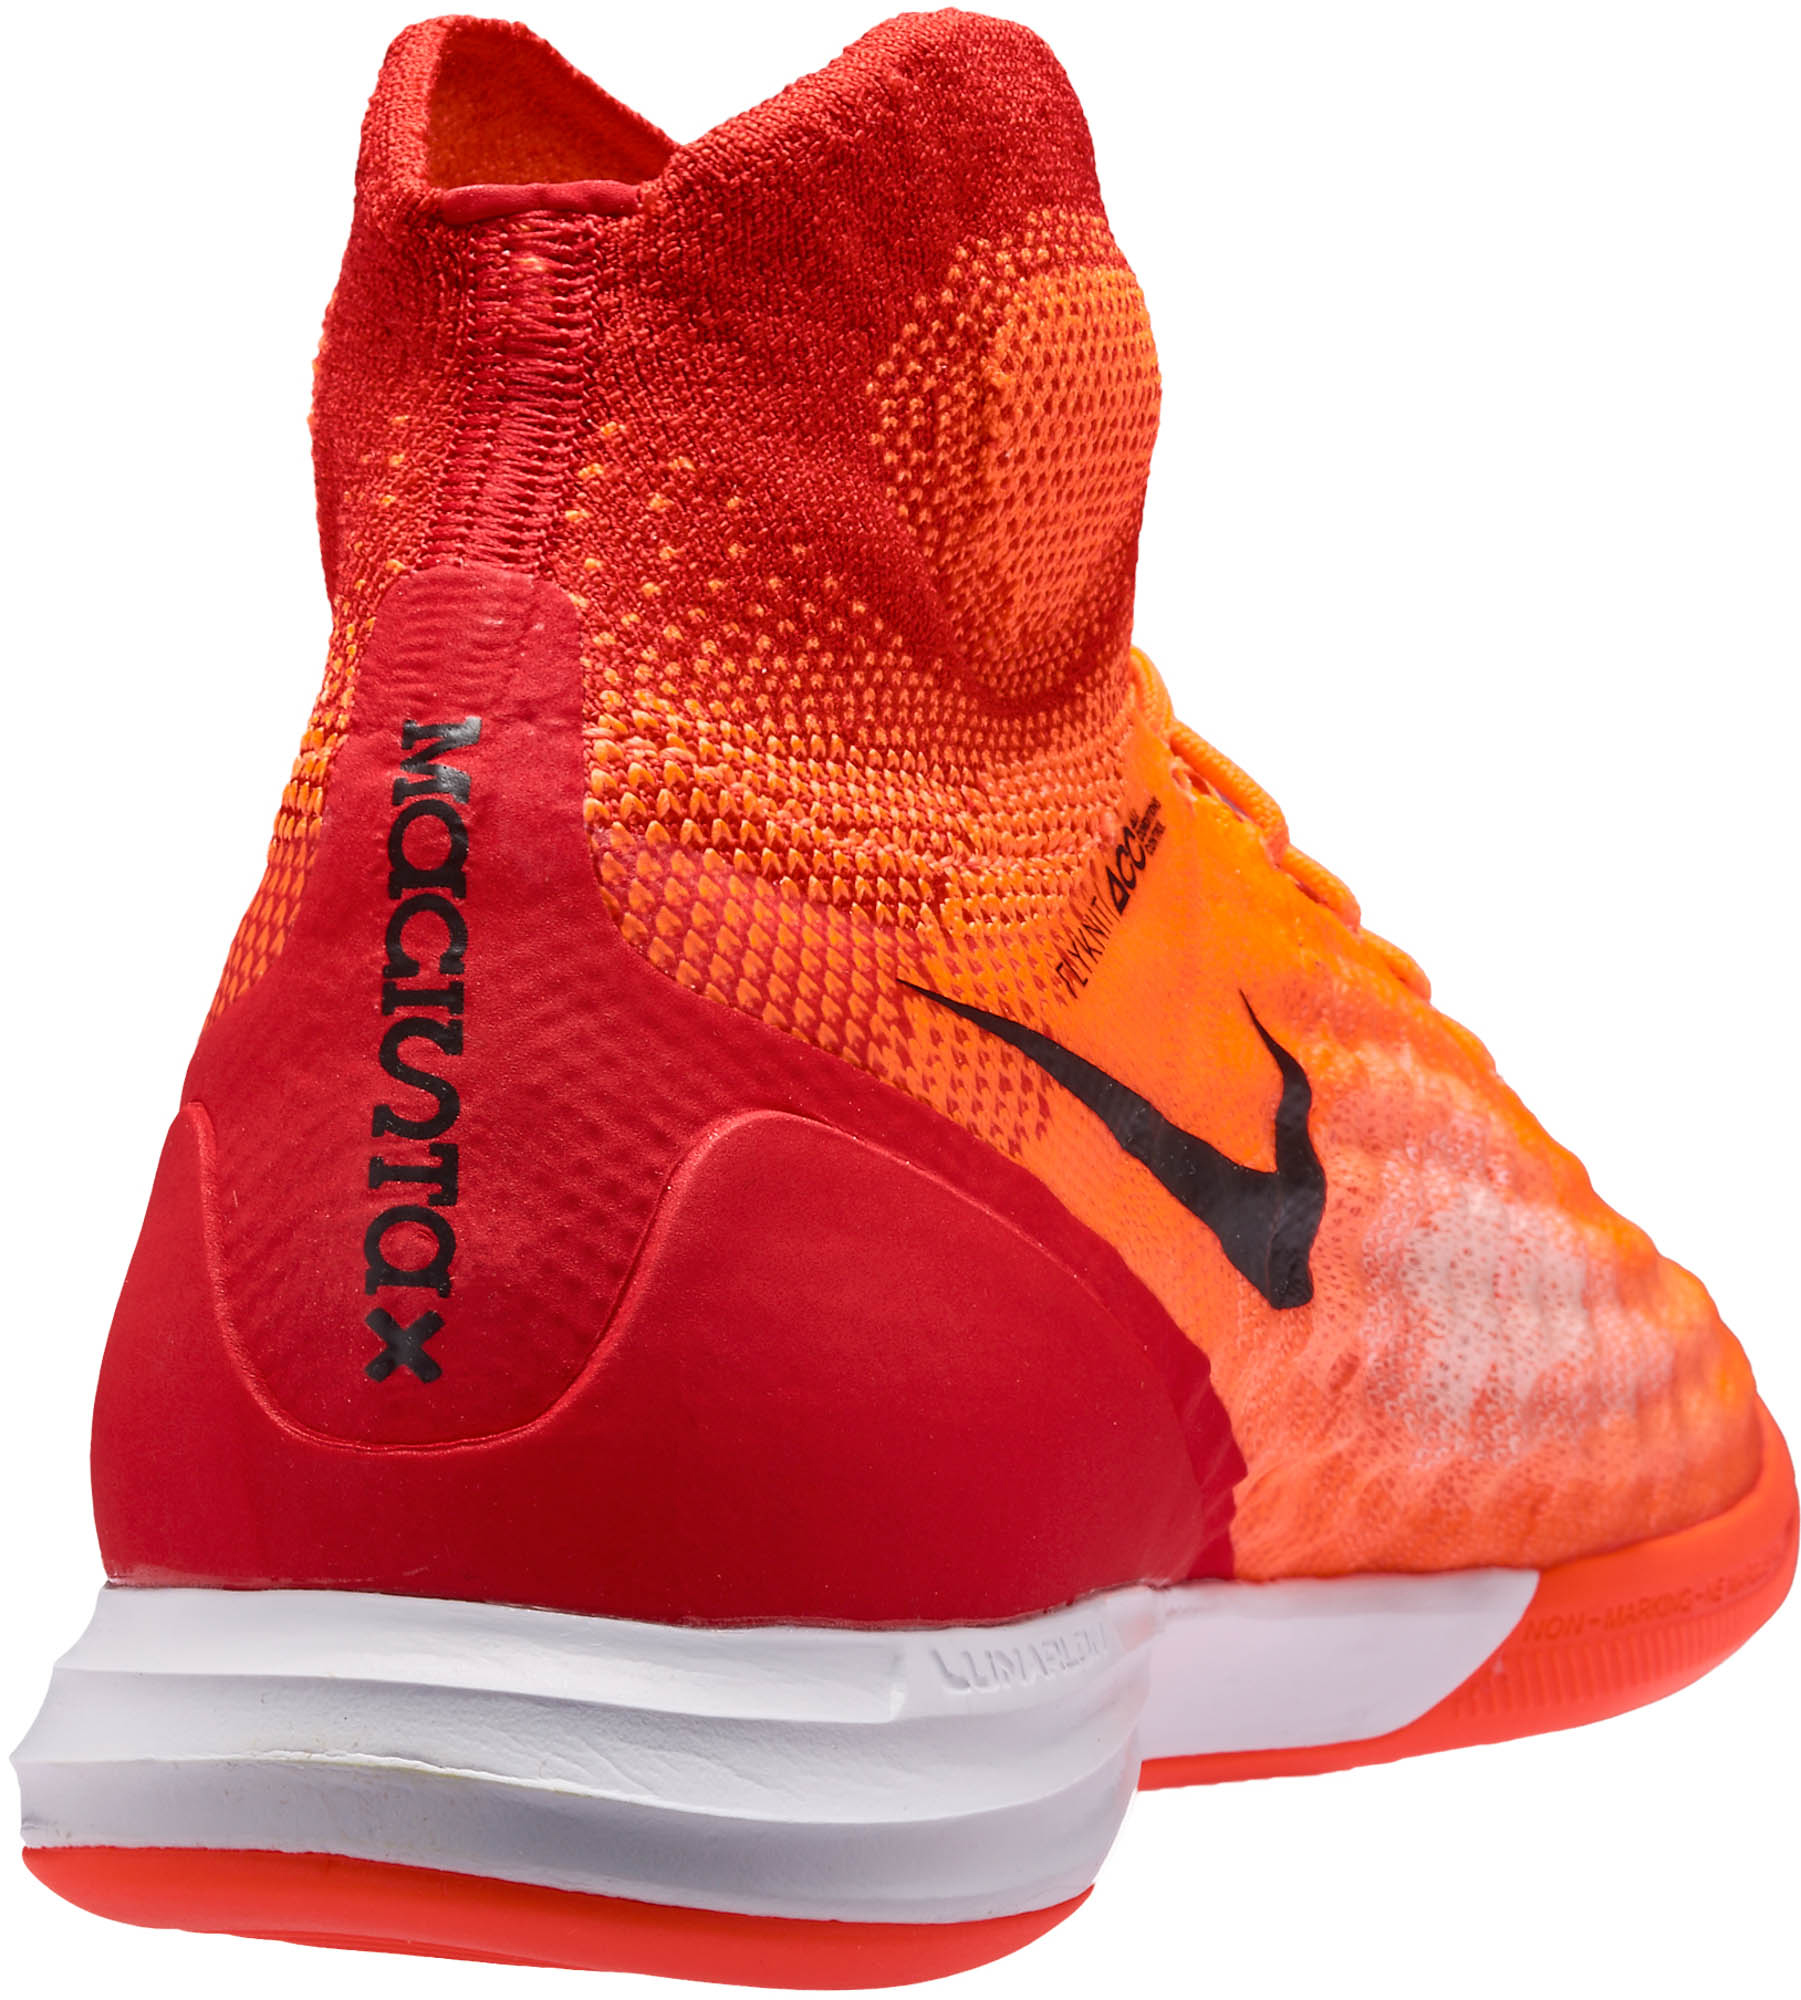 91e3e7c30 Nike MagistaX Proximo II IC – Total Crimson University Red